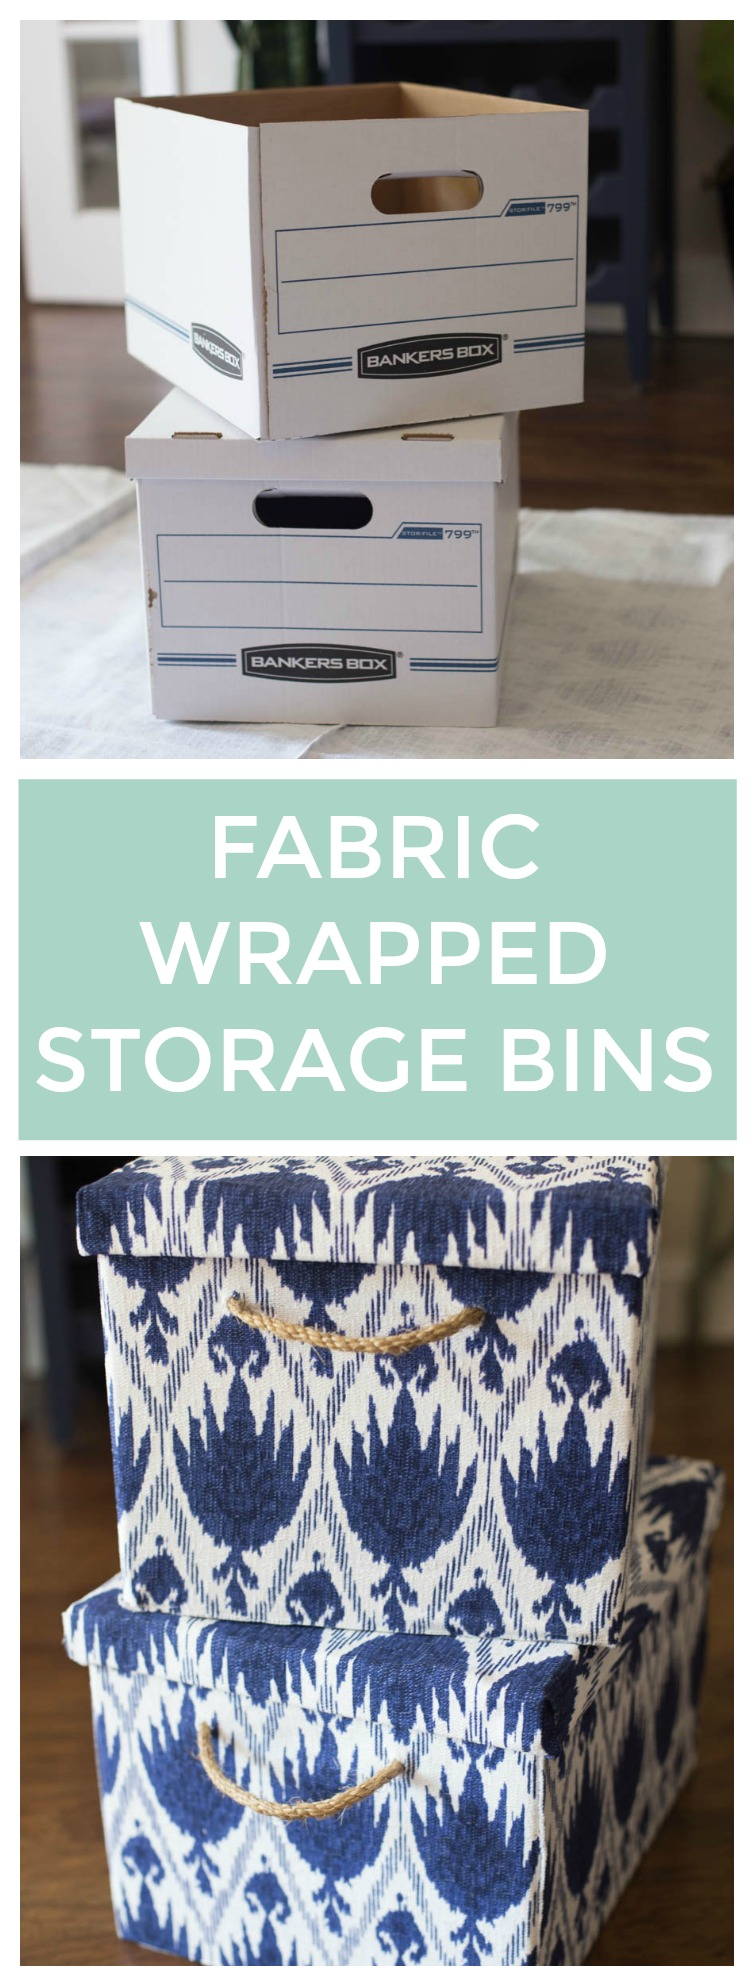 Make Stylish Storage Bins By Covering Bankers Boxes with Fabric & Fabric Covered Storage Boxes - Stylish Storage